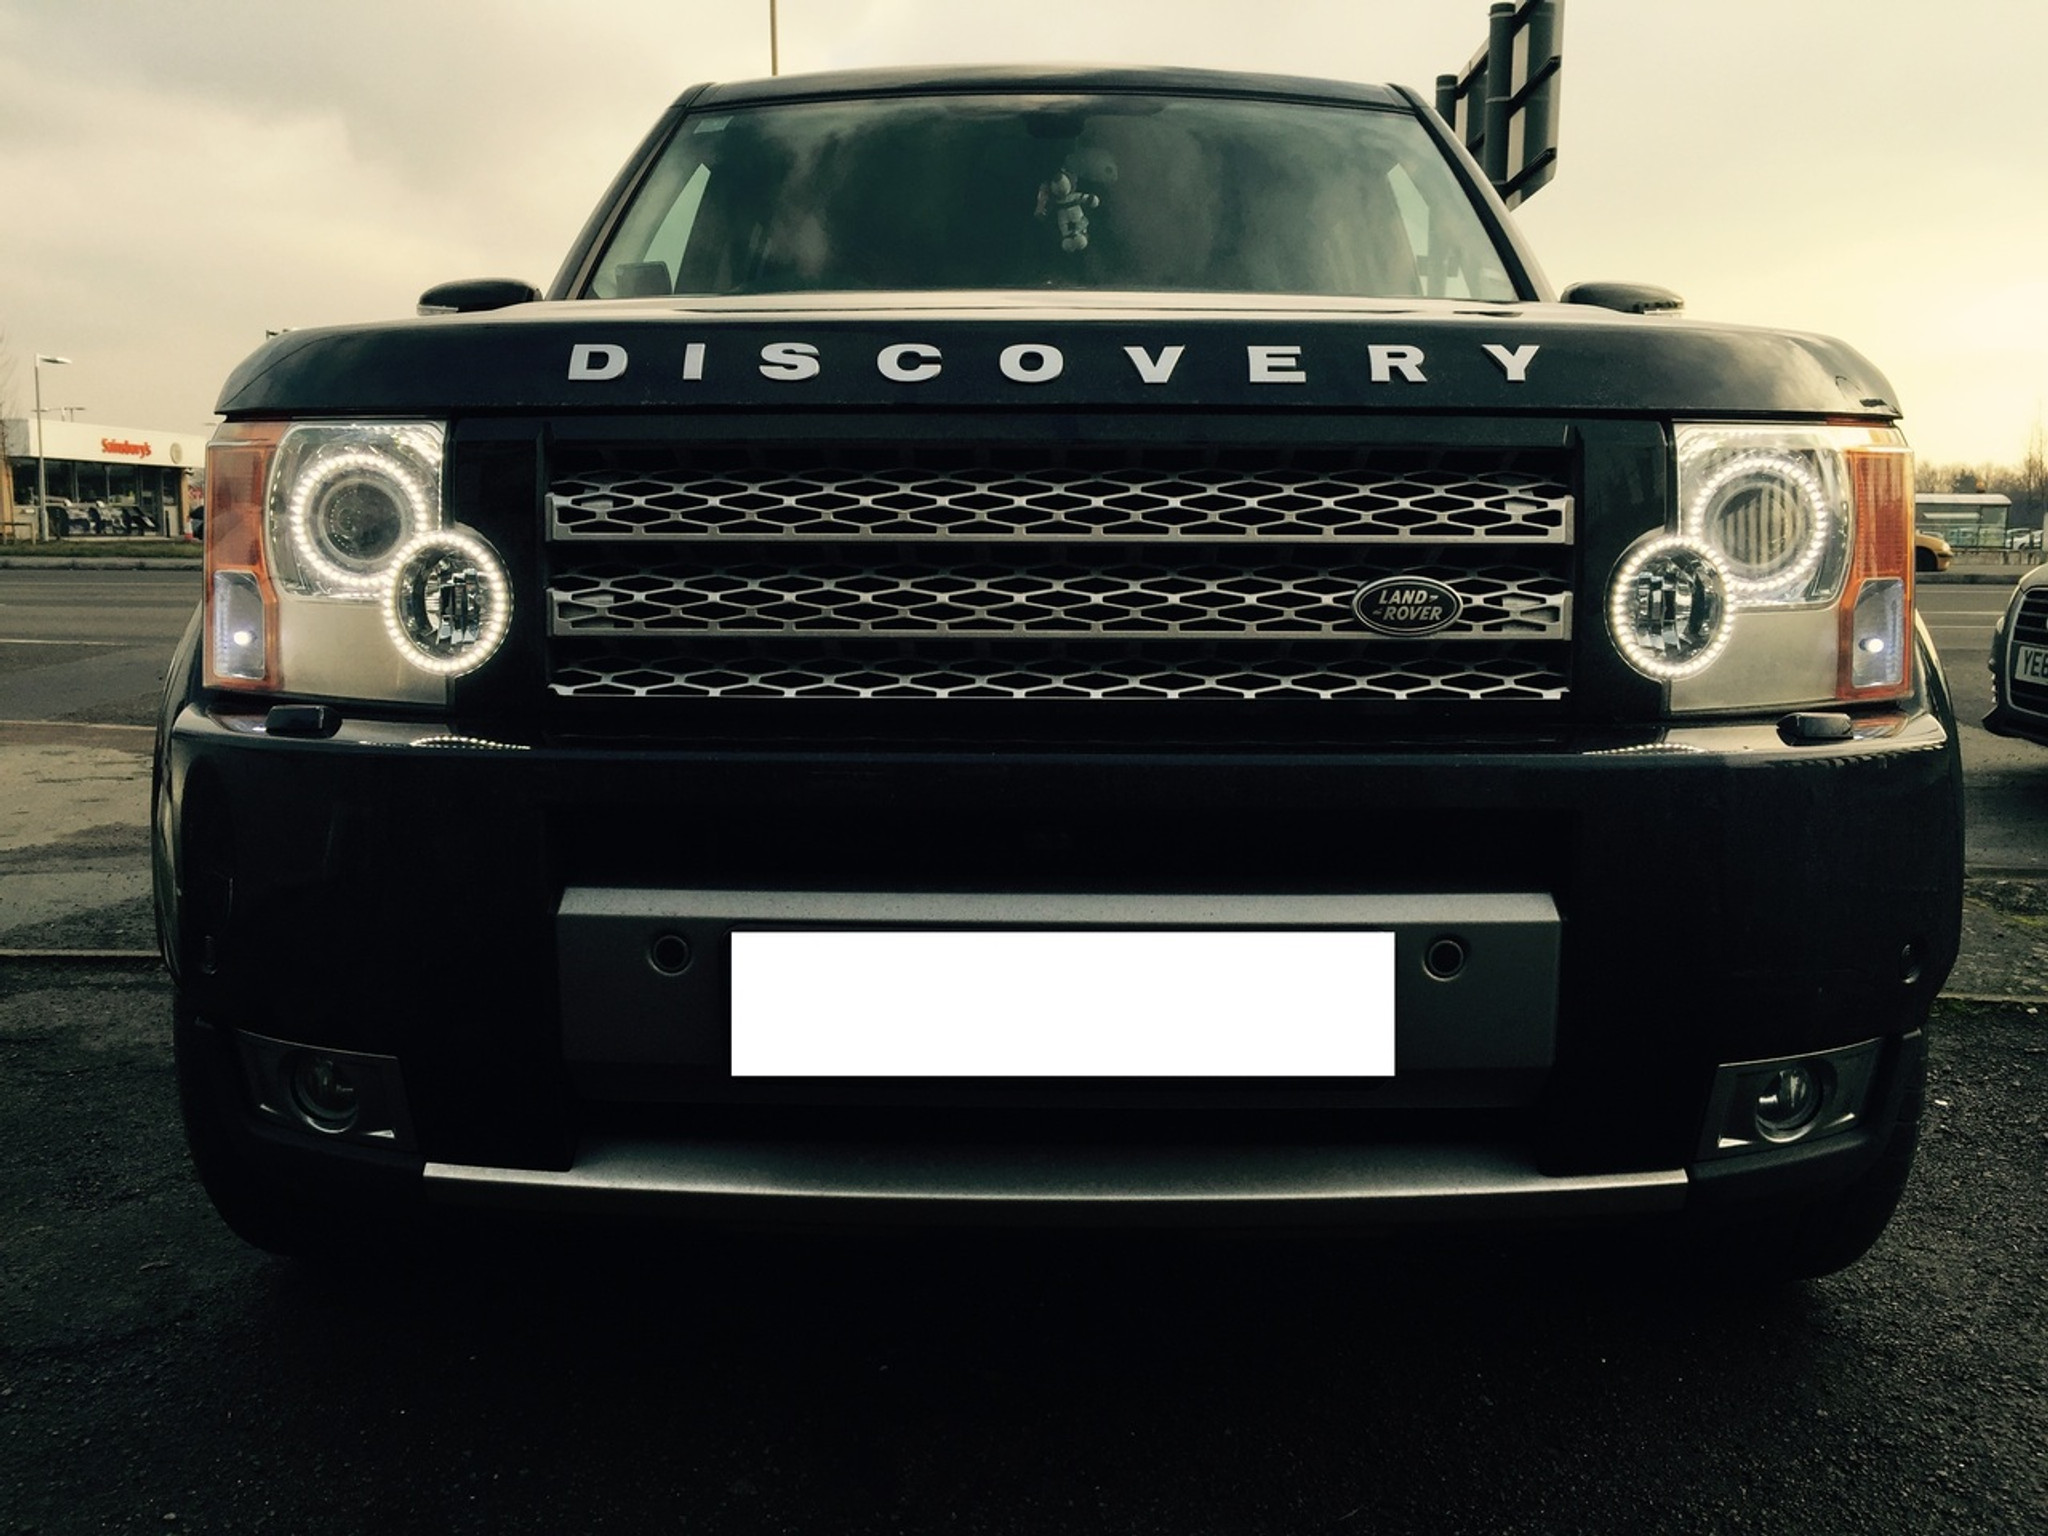 land rover discovery 3 headlight conversion to 2013 led. Black Bedroom Furniture Sets. Home Design Ideas